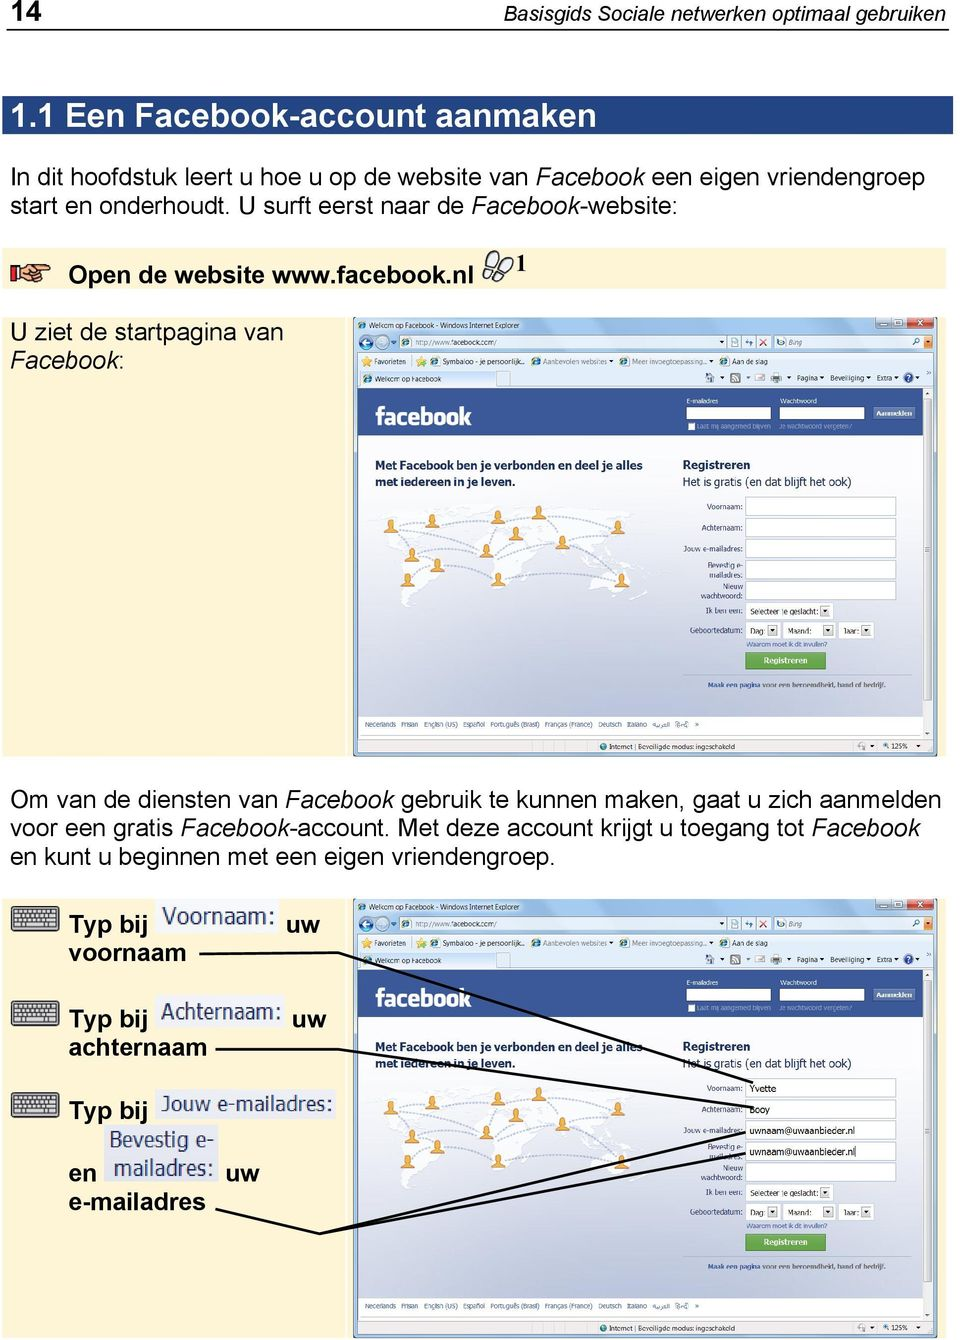 U surft eerst naar de Facebook-website: Open de website www.facebook.